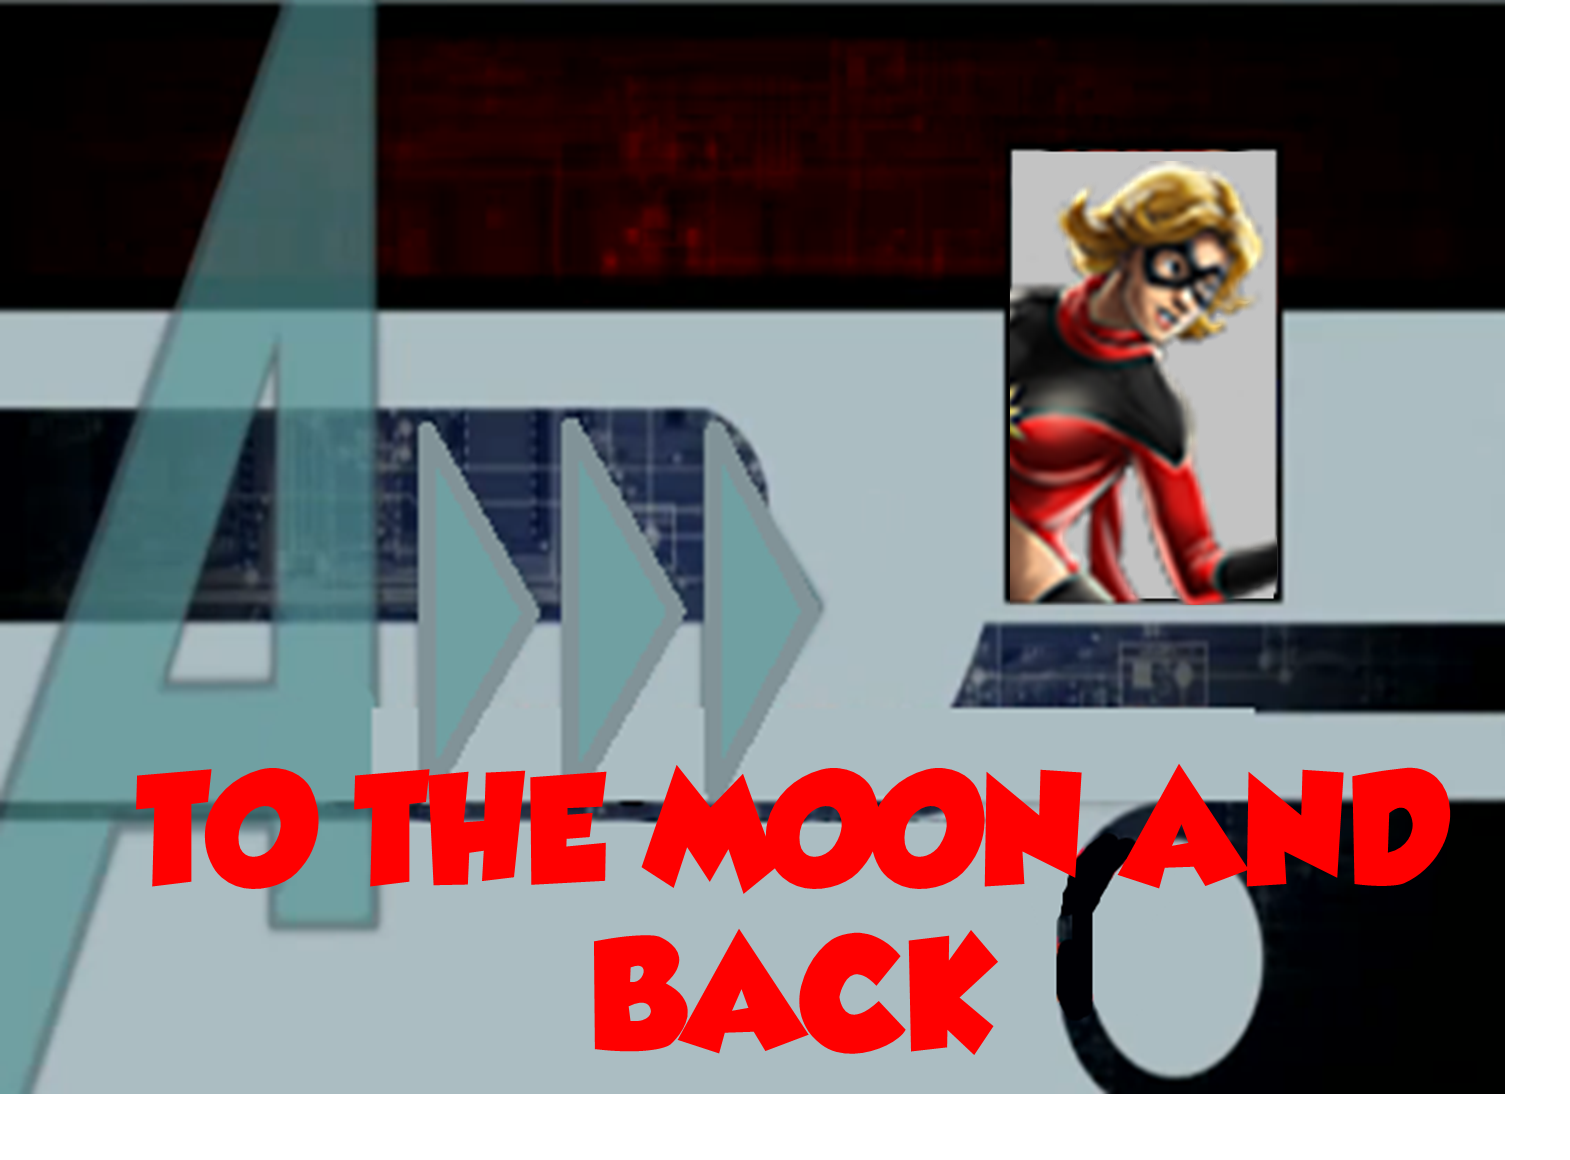 To The Moon and Back (A!)